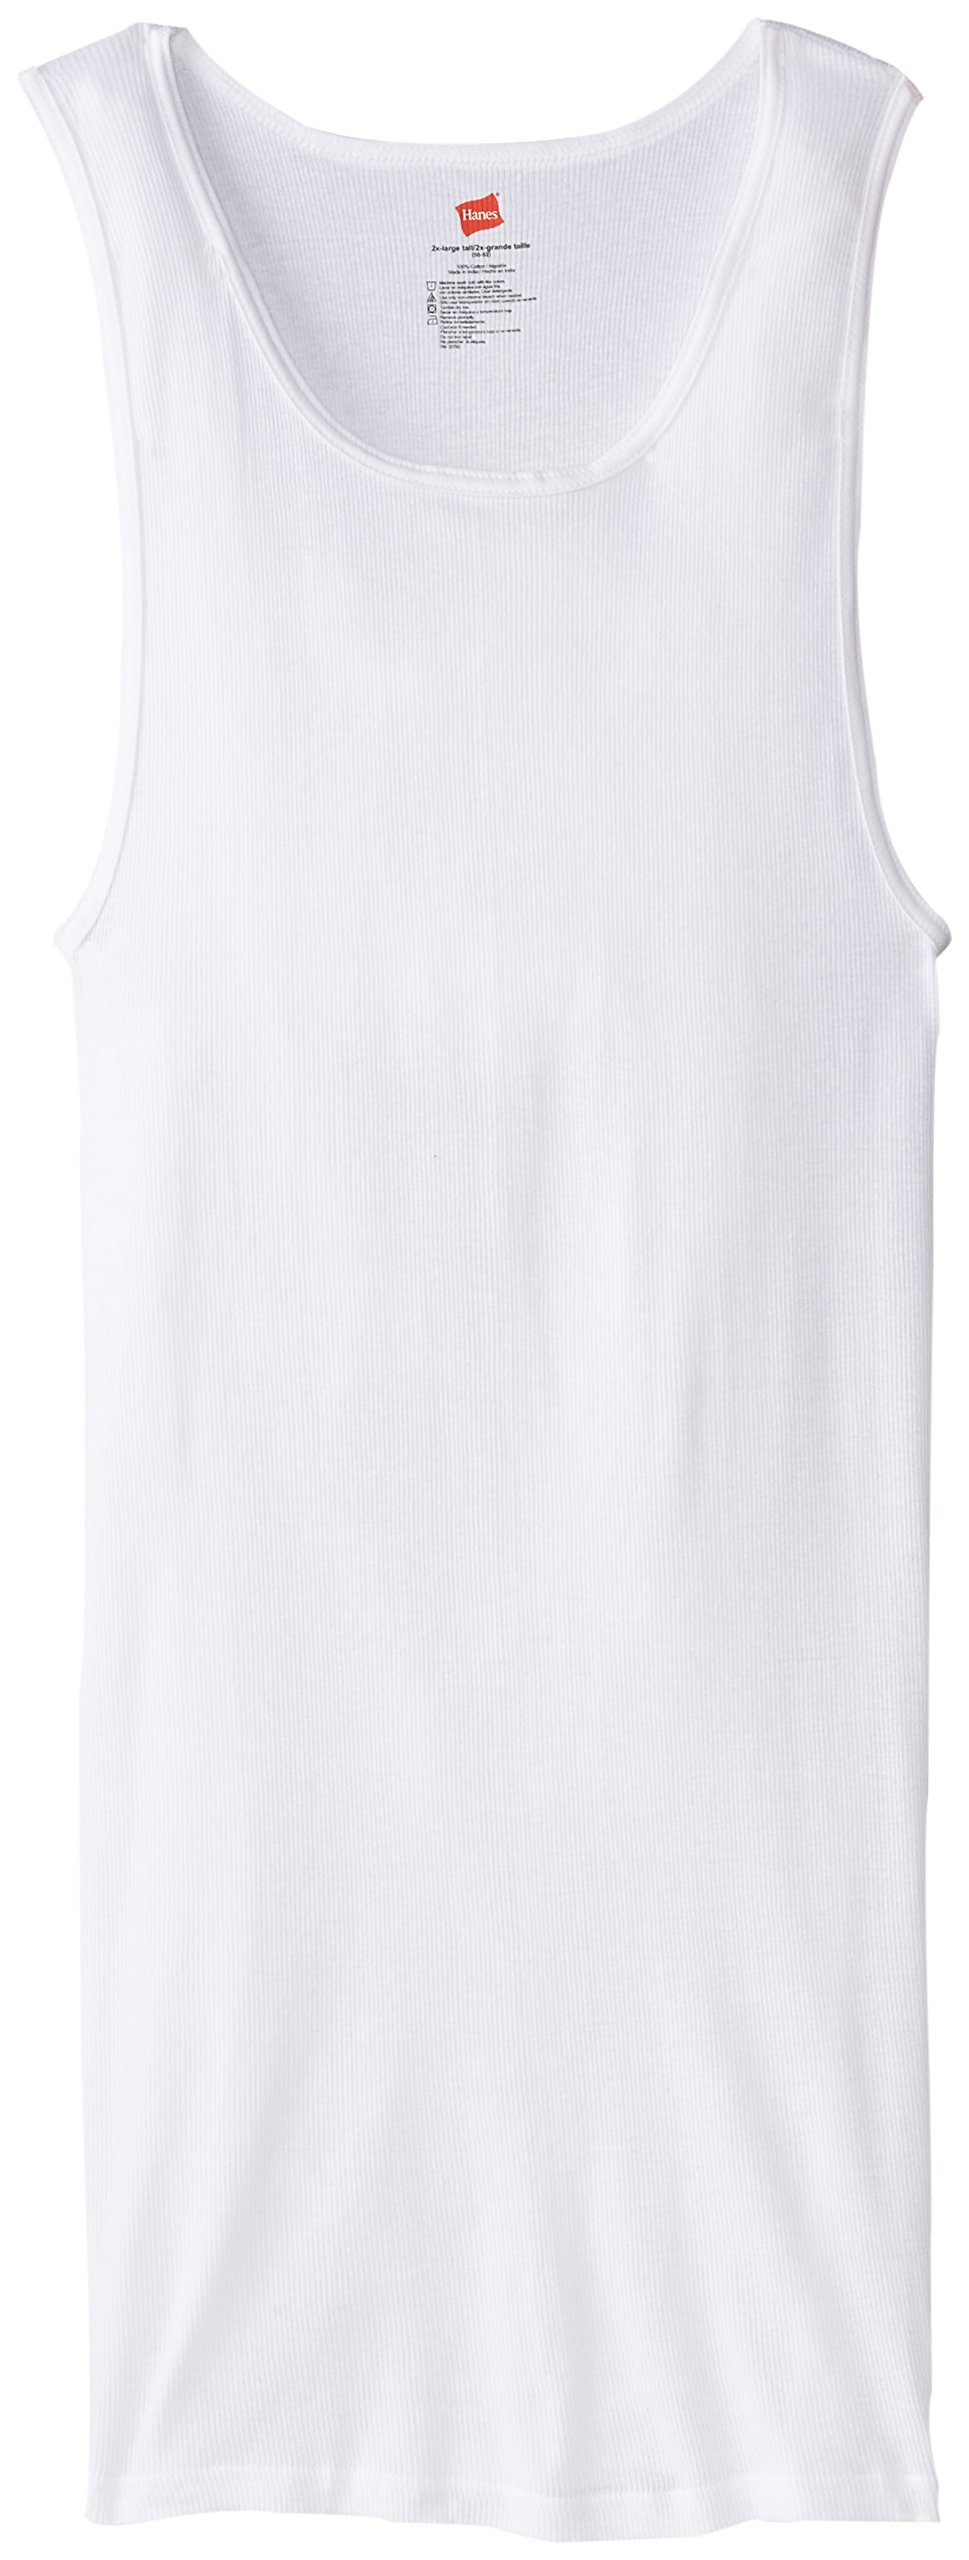 Hanes Men's Tall Man A-Shirt, White, X-Large/Tall (Pack of 3) by Hanes